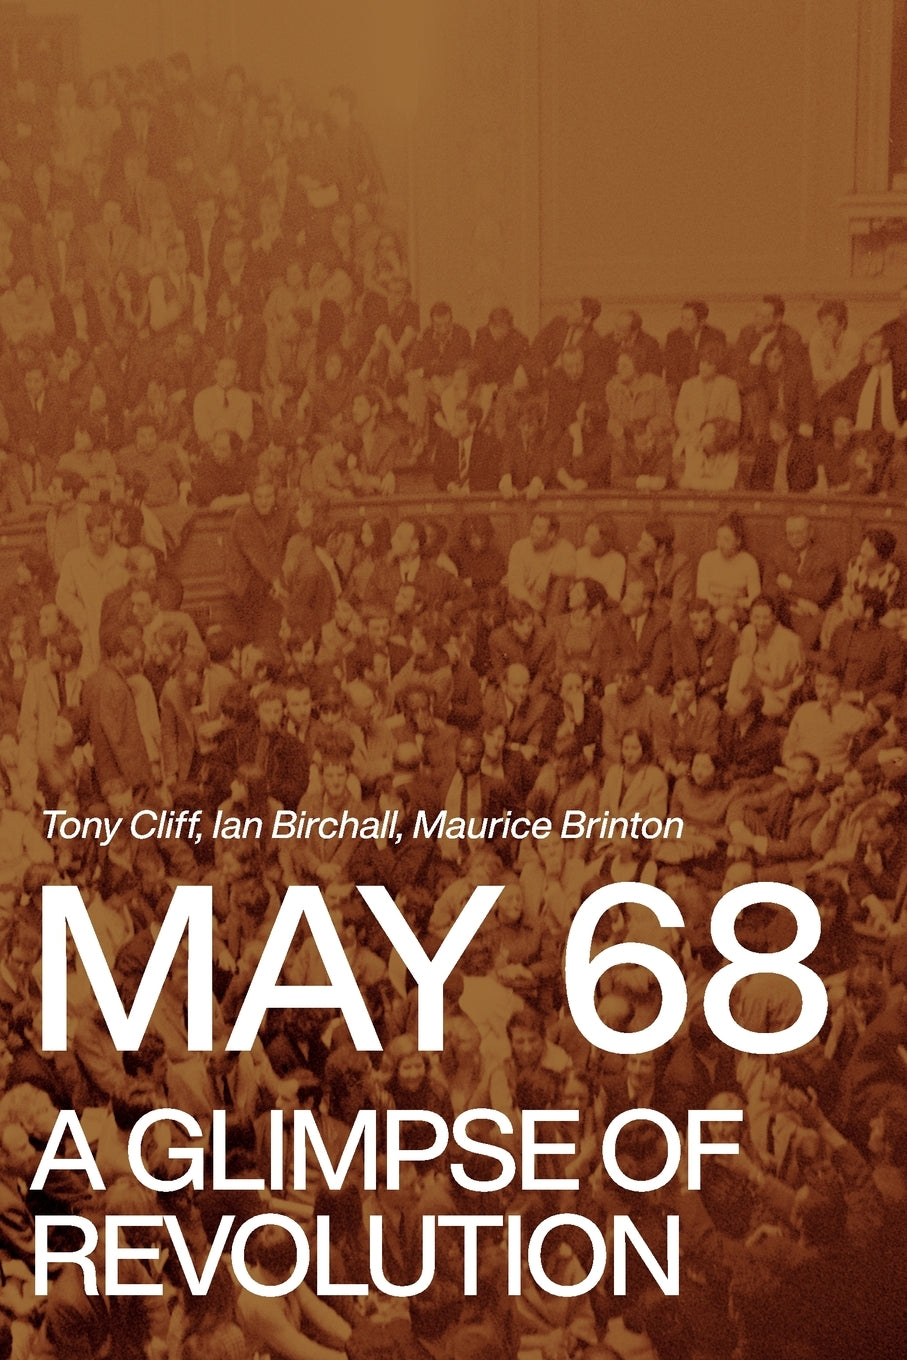 May 68: A Glimpse of Revolution